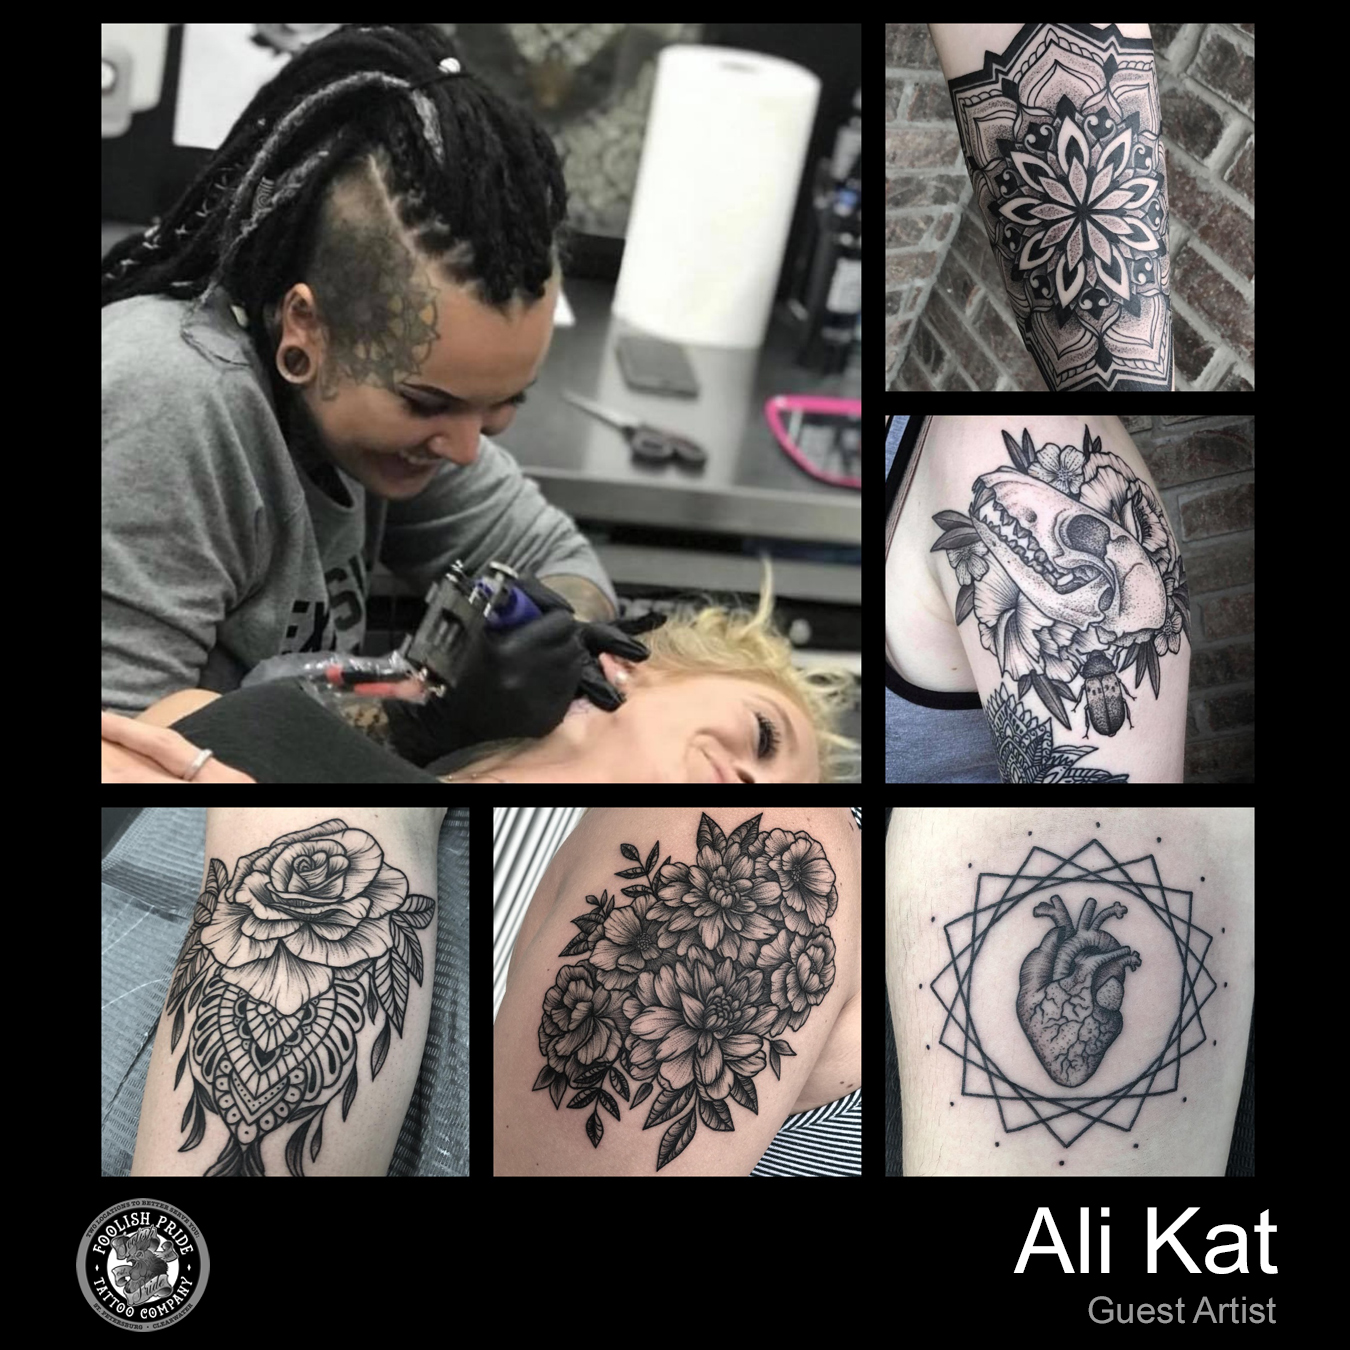 Ali Kat    June 13th - 17th